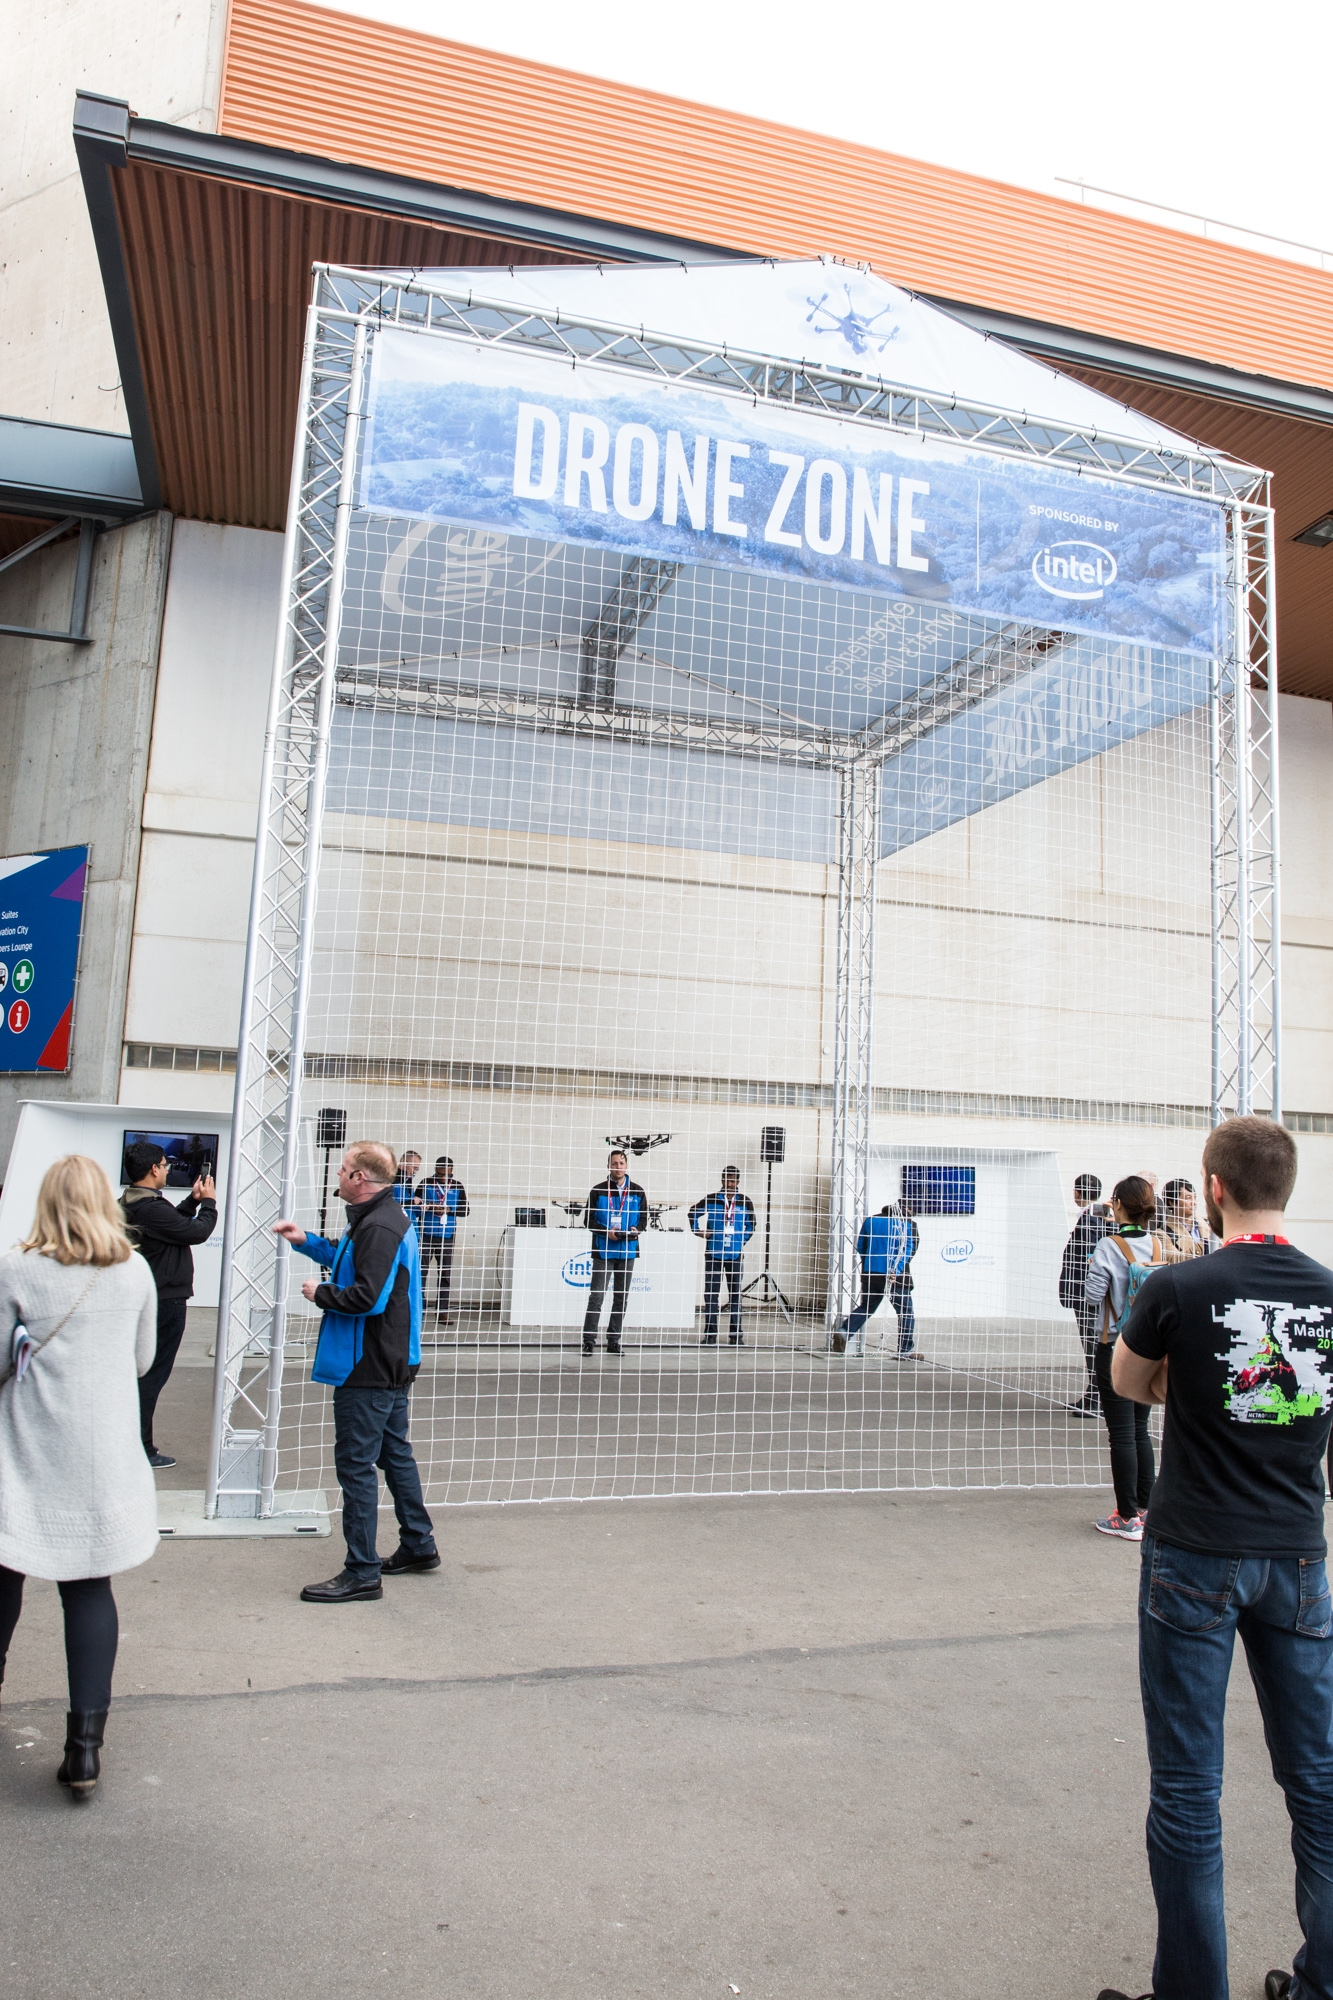 MWC-drone-2-1